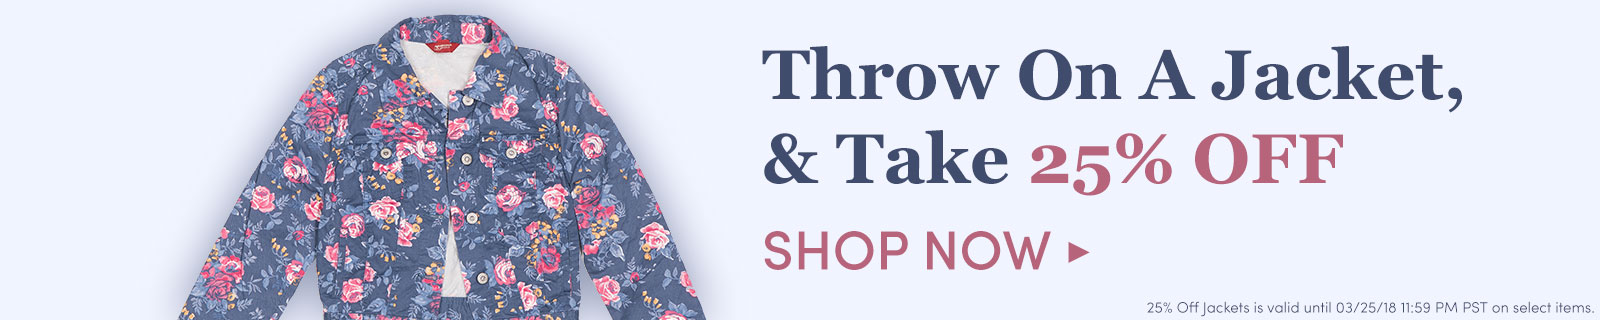 Put A Coat On… Take 25% OFF Jackets! [Shop now]